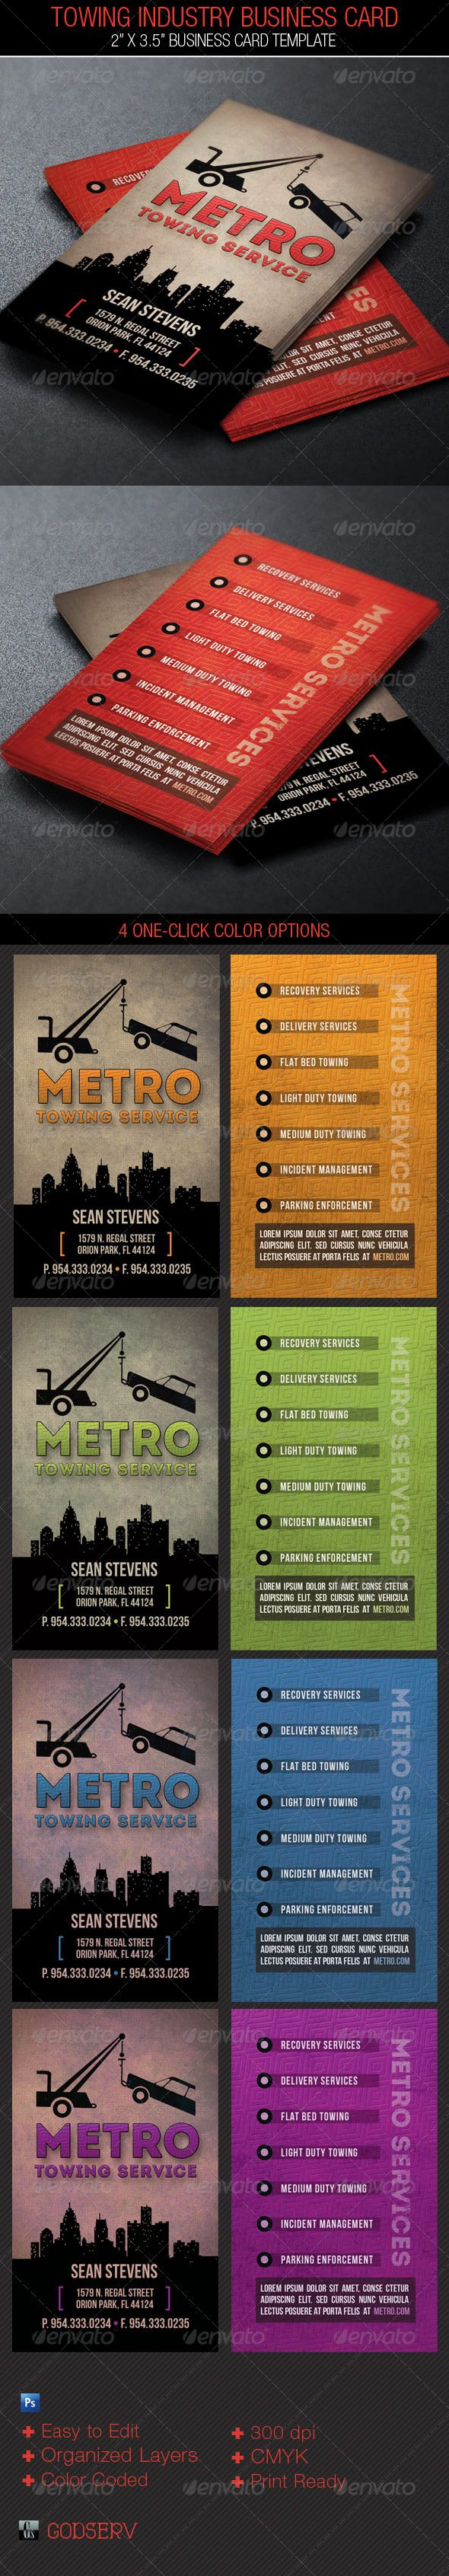 Towing Industry Business Card Template | Card templates, Business ...